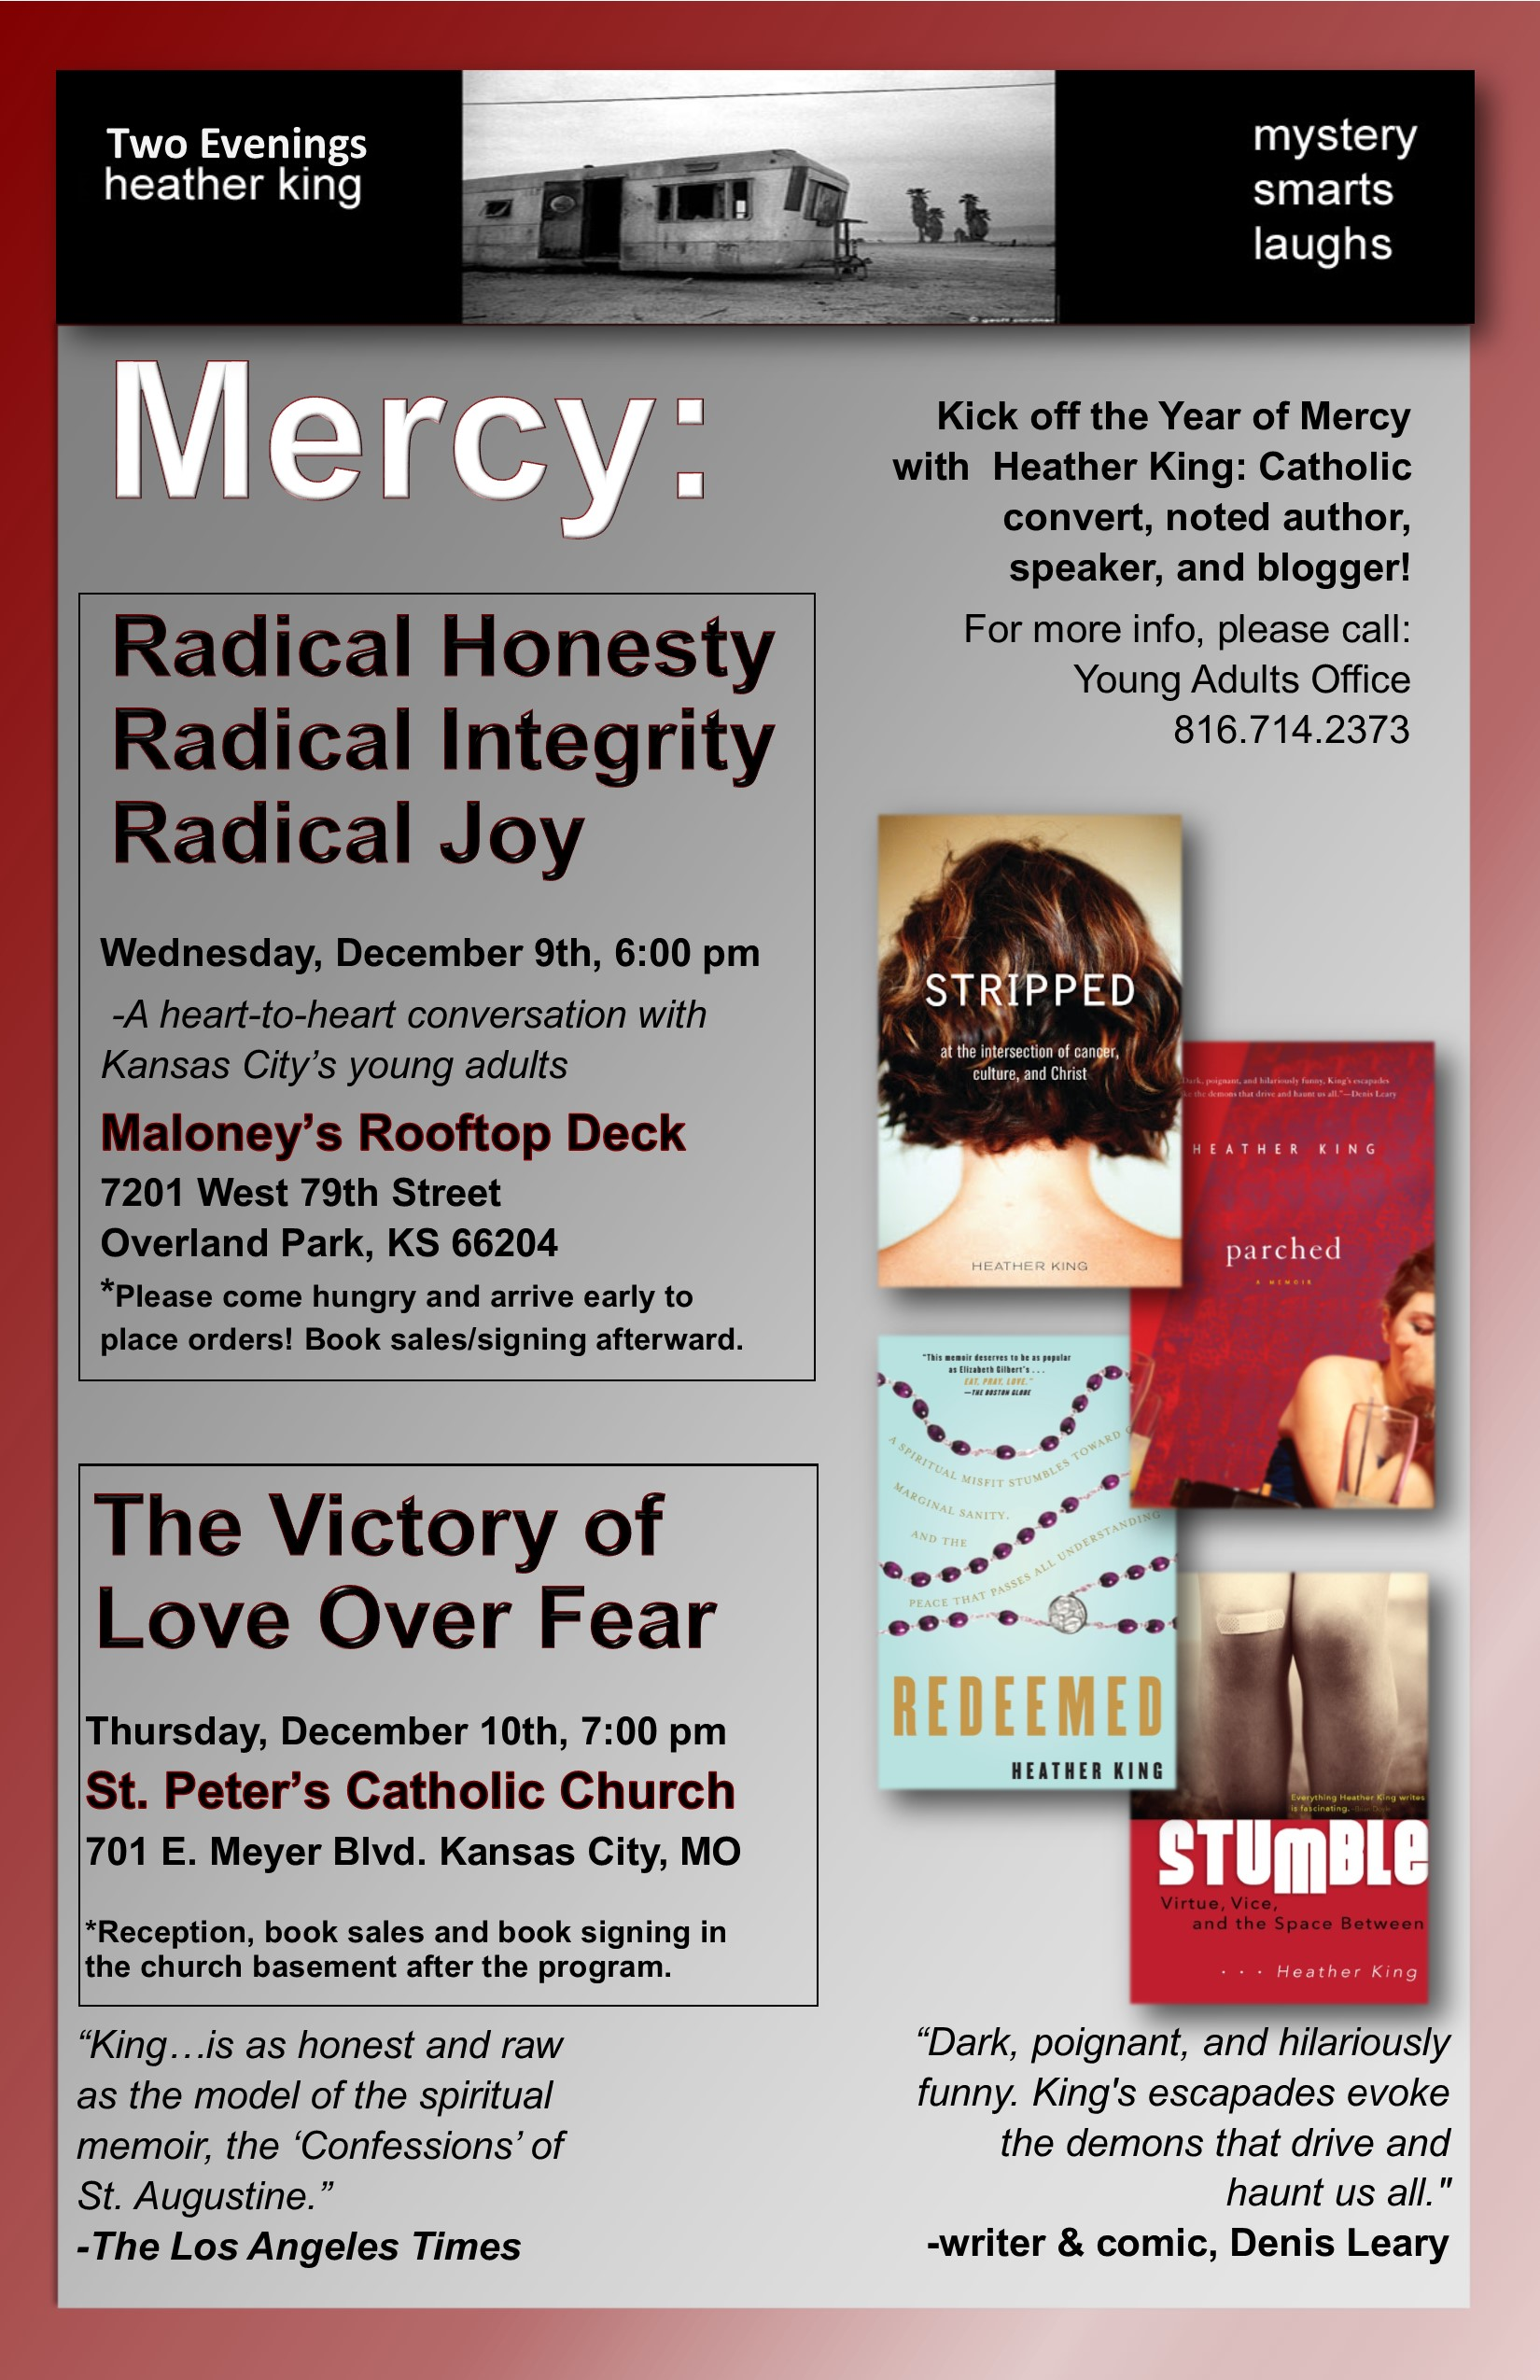 Heather King coming to St. Peter's Parish December 10, 2015